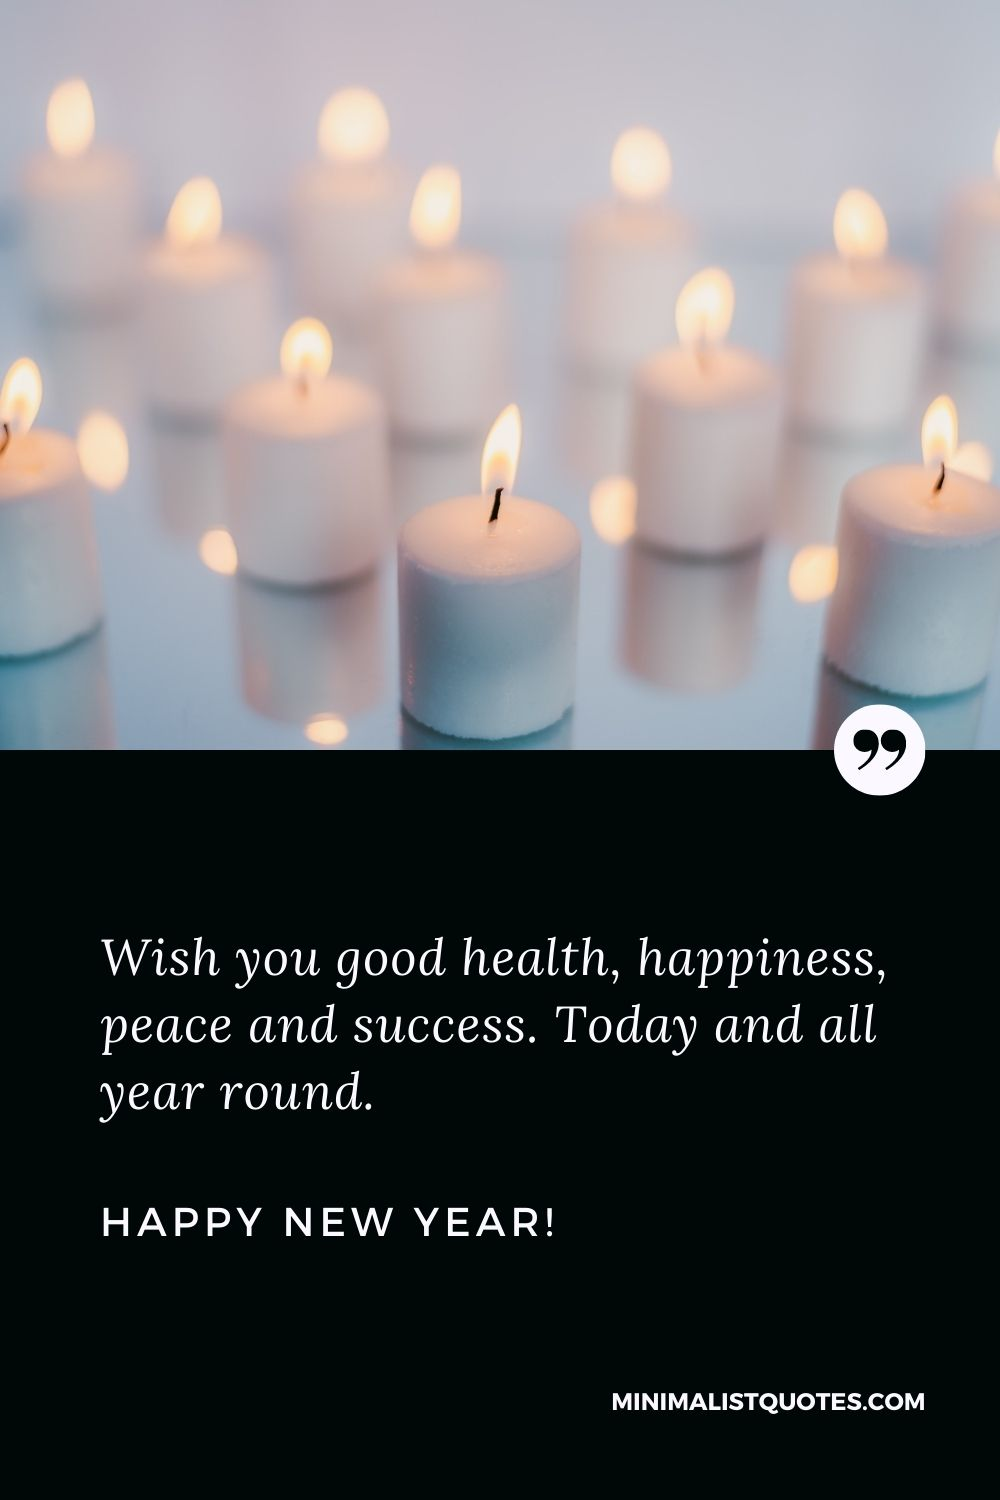 New year's eve greetings: Wish you good health, happiness, peace and success. Today and all year round. Happy New Year!